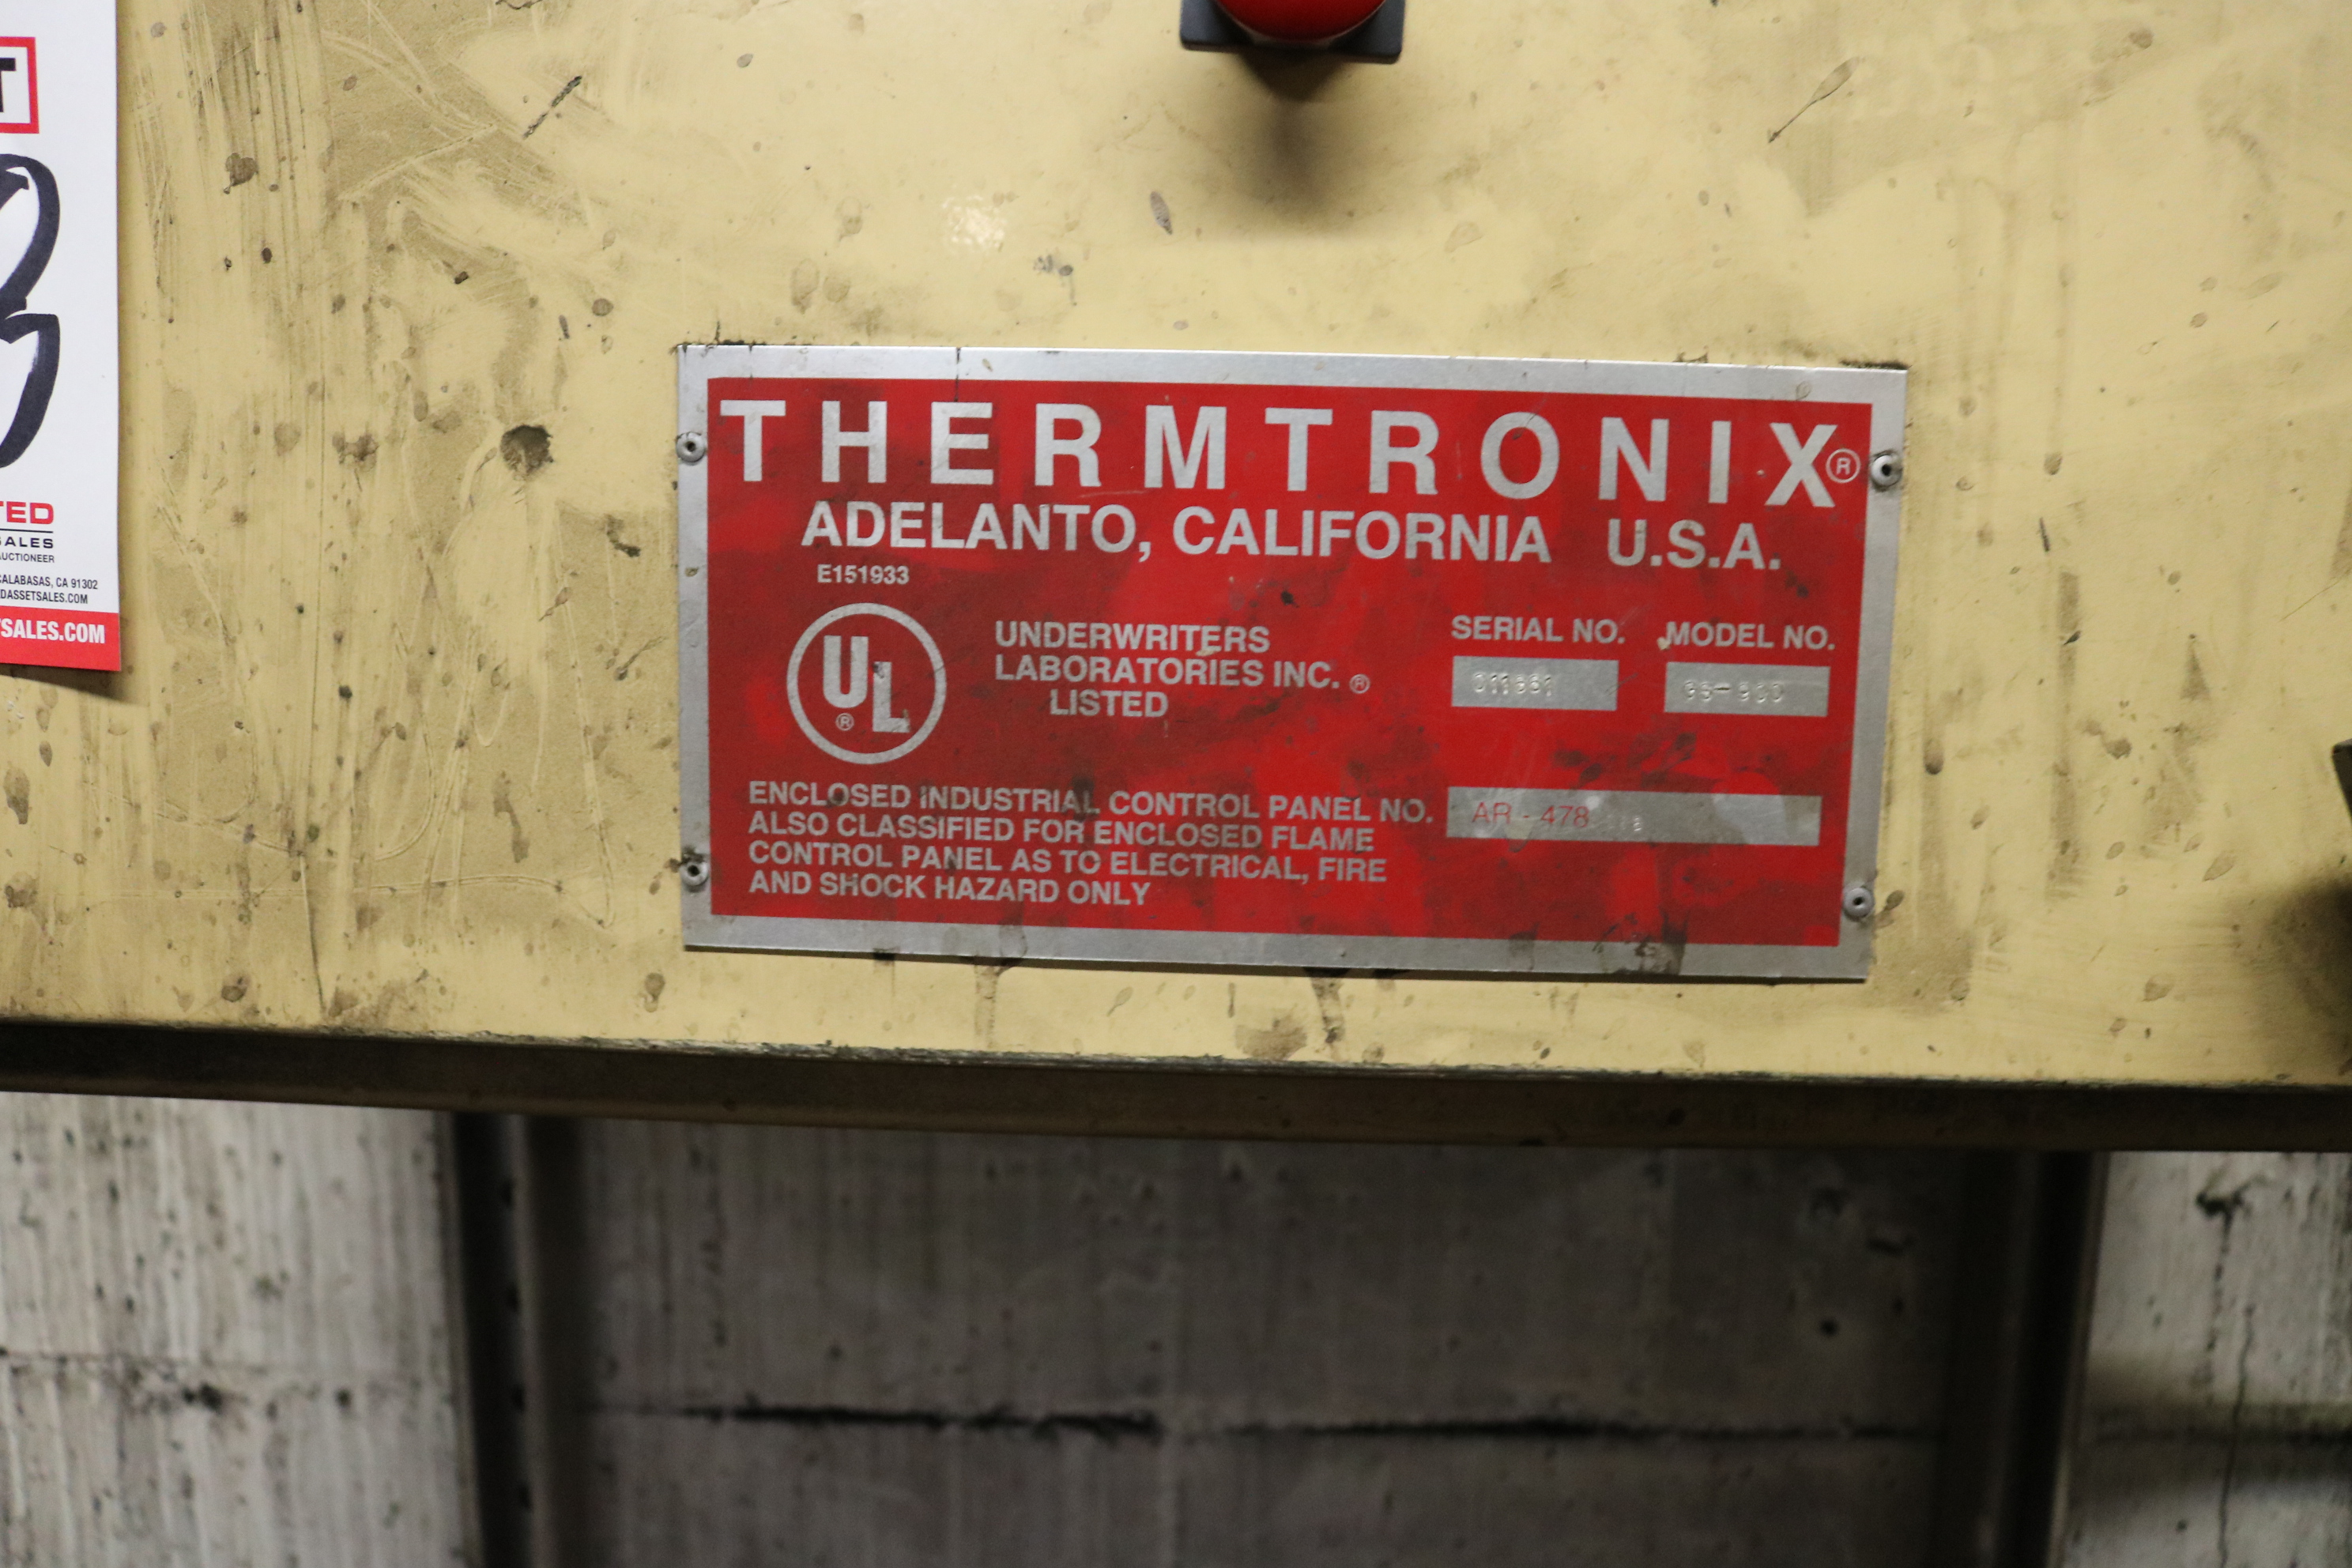 Lot 48 - 2006 THERMTRONIX MODEL GS2000 2000 LB GAS FIRED MELTING FURNACE, GAS SYSTEM AND CONTROLS, S/N